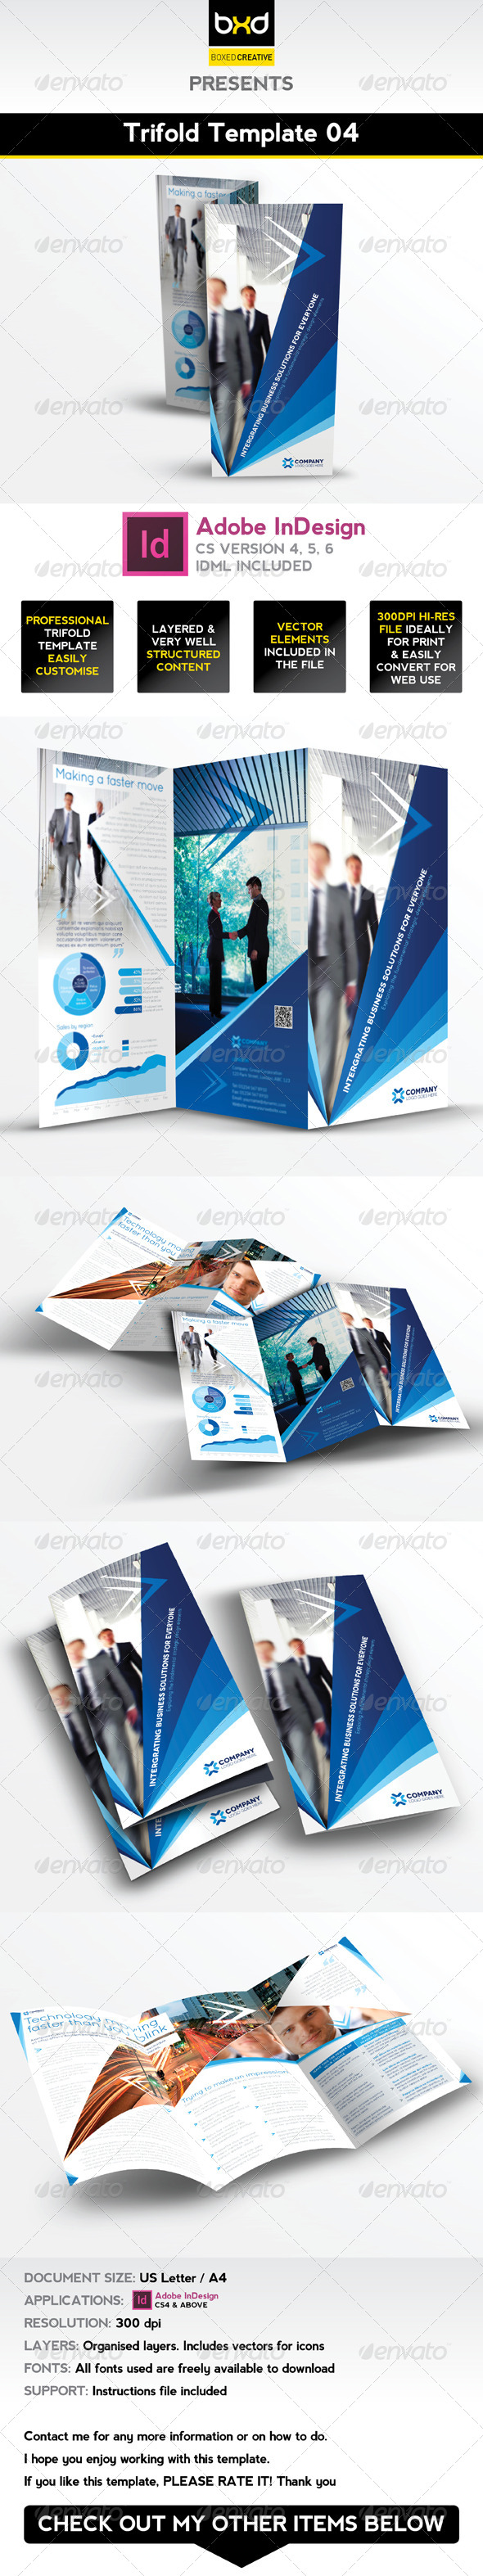 GraphicRiver Trifold Brochure Template 04 InDesign Layout 4994564